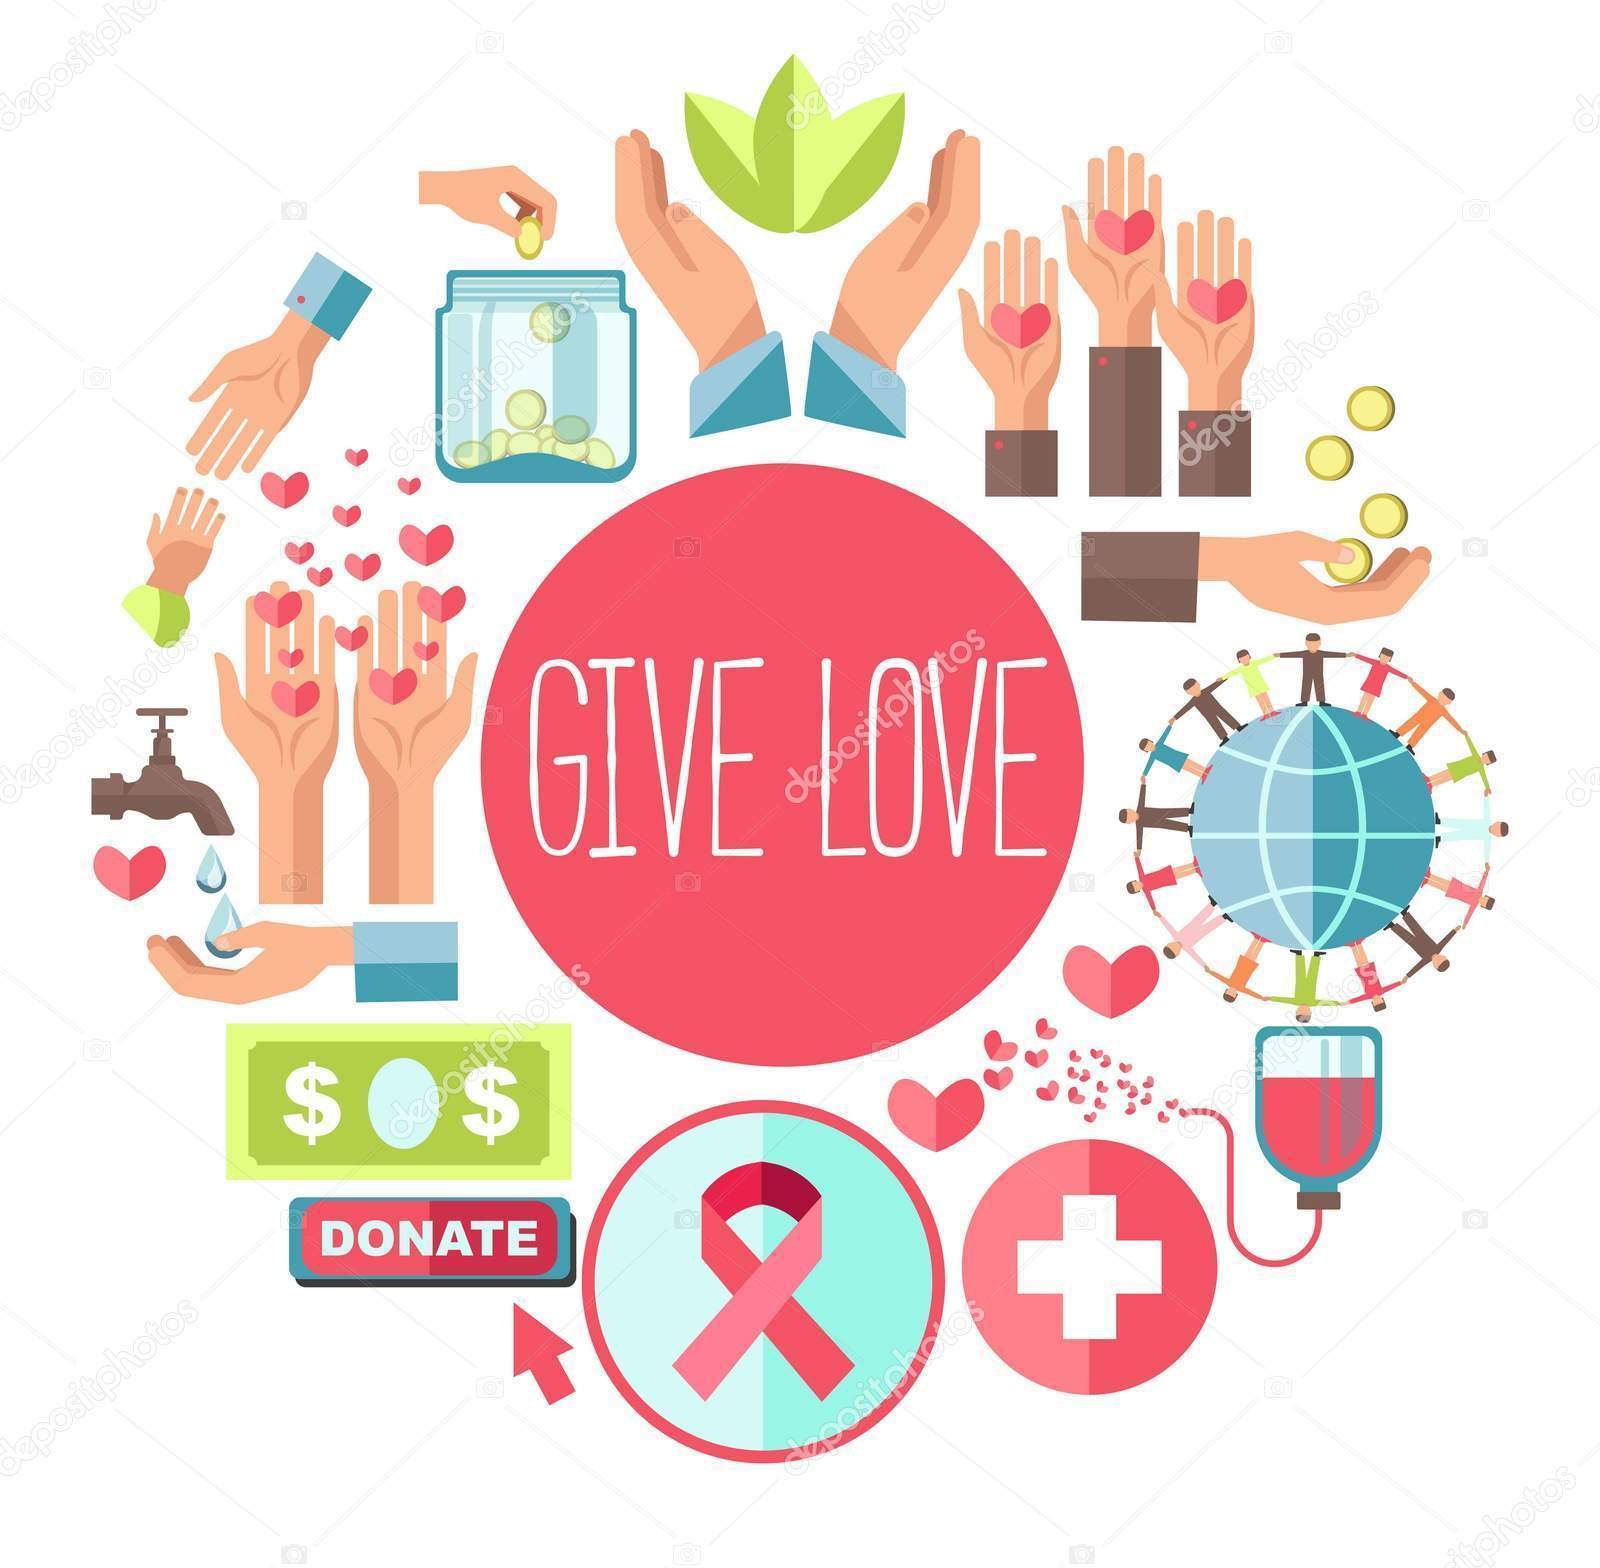 Give love poster fro social charity and donation action of icons for blood donation or money foundation. Vector flat design for charity help and social healthcare volunteering concept